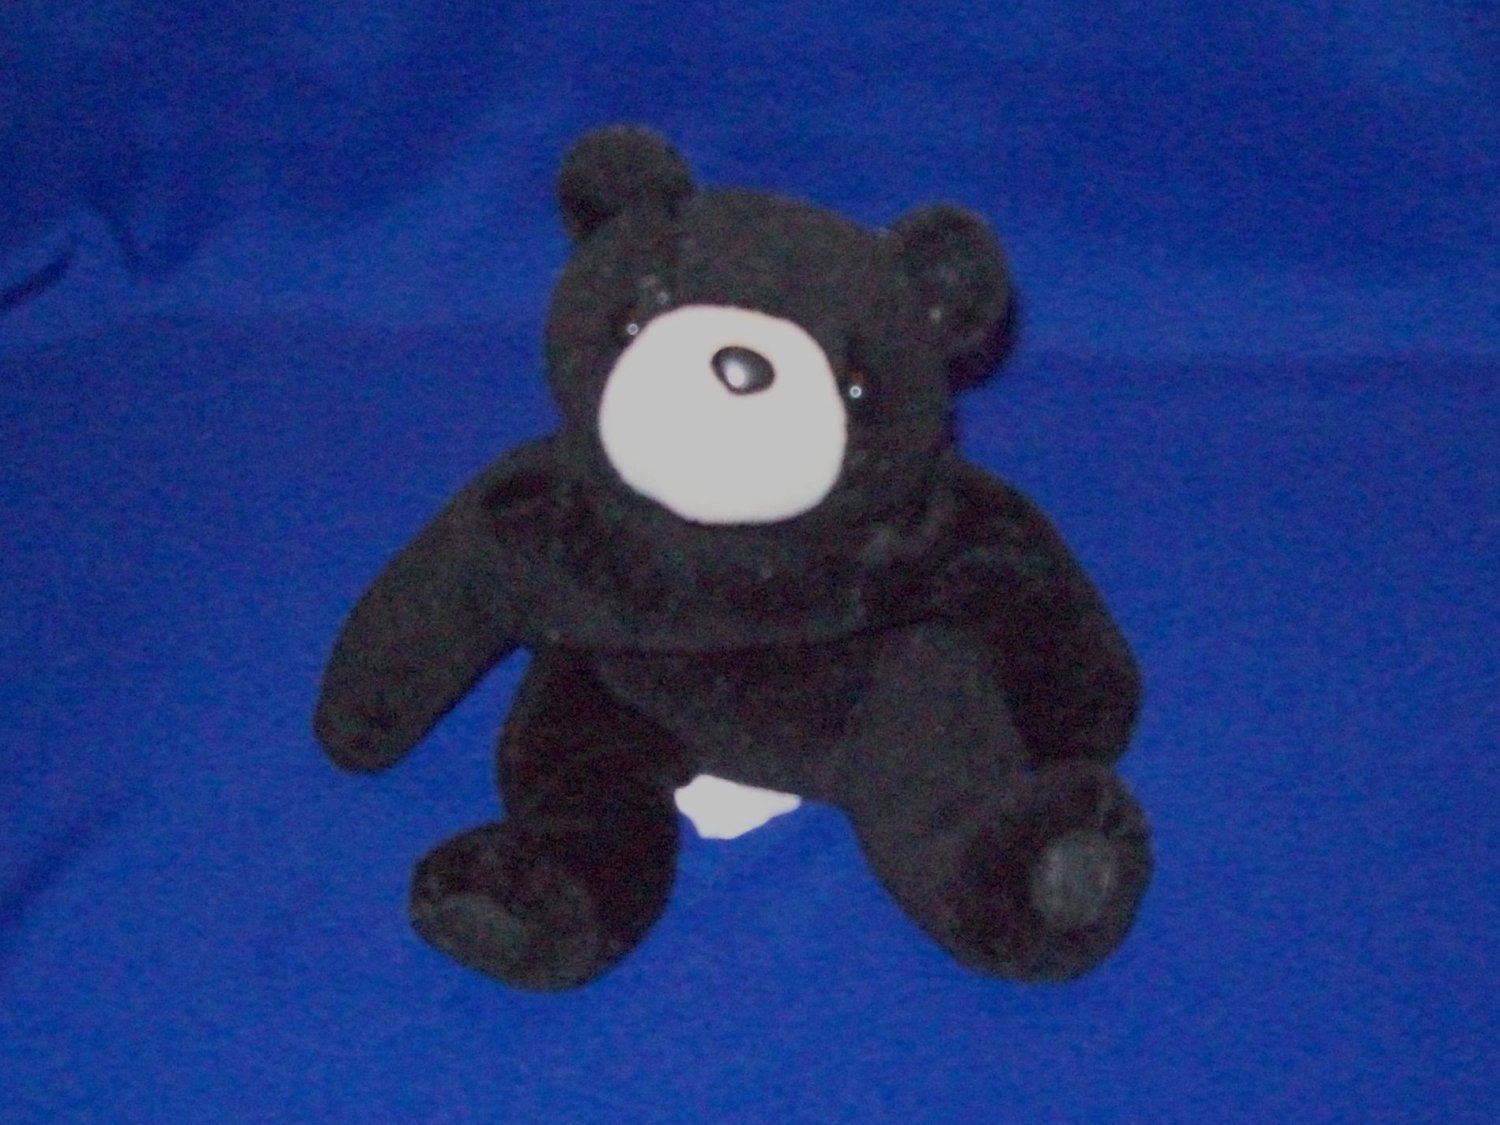 Stuffed Animals, Plush Toys, Bears - Bean Bag Black Bear with brown nose